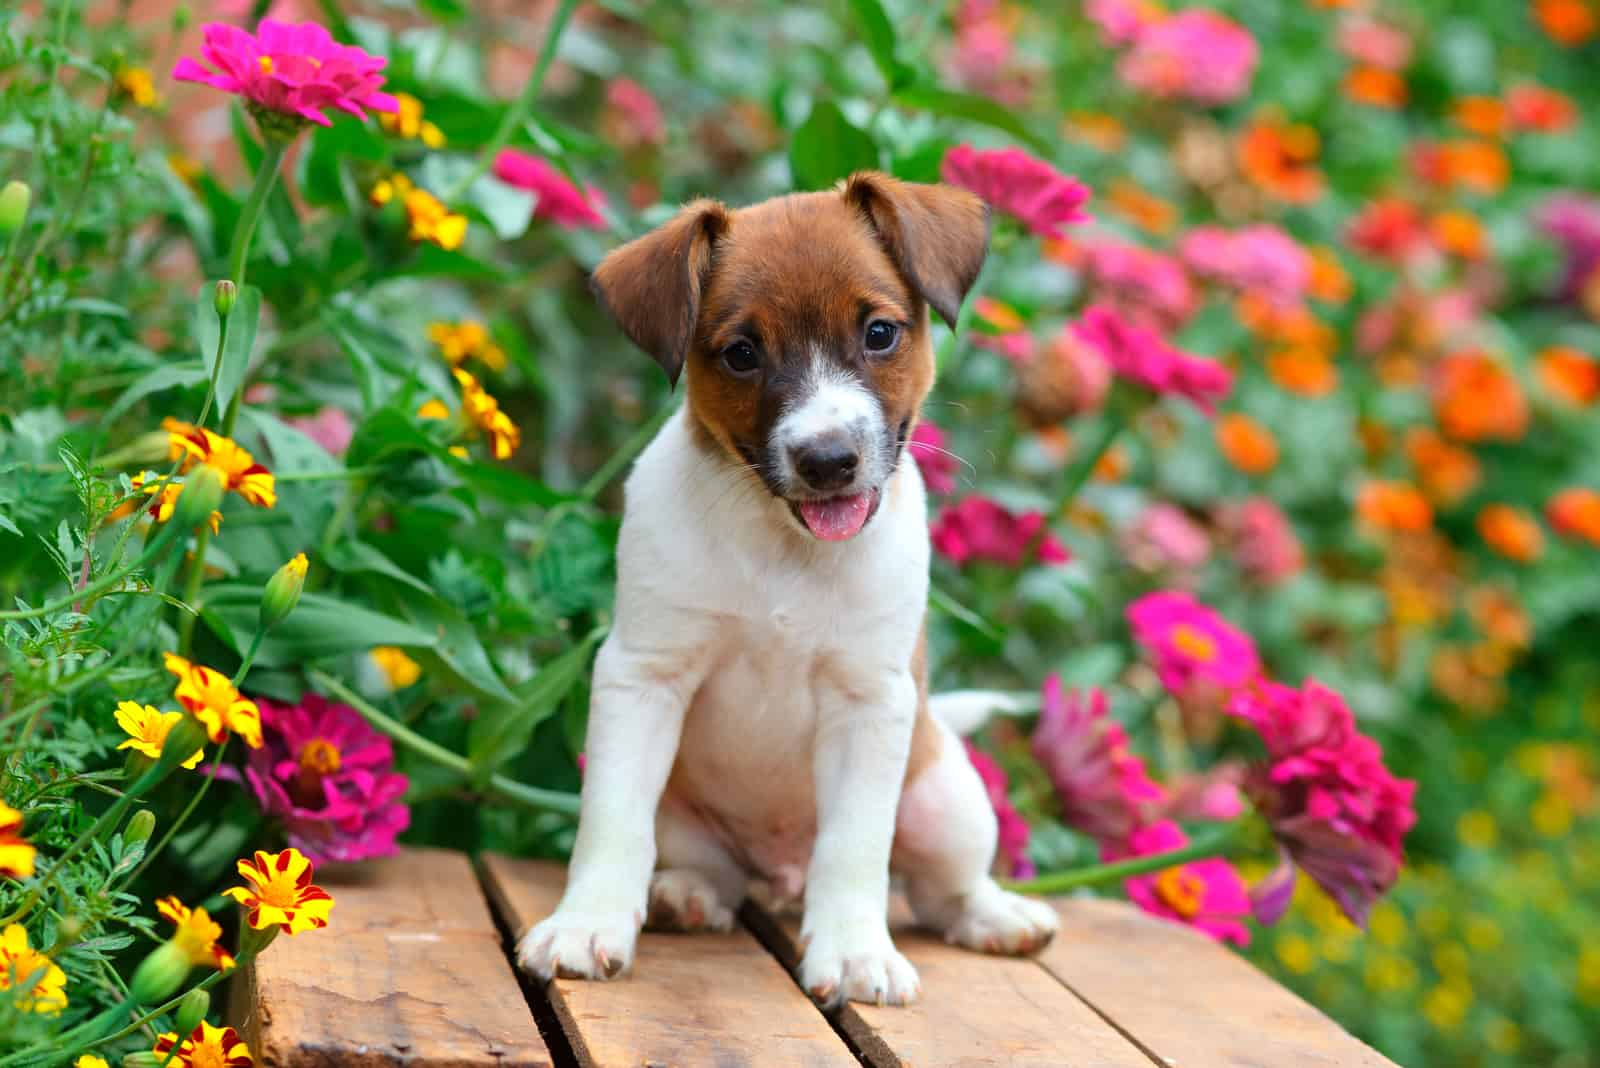 puppy sitting on old wooden crate in a garden full of colorful flowers